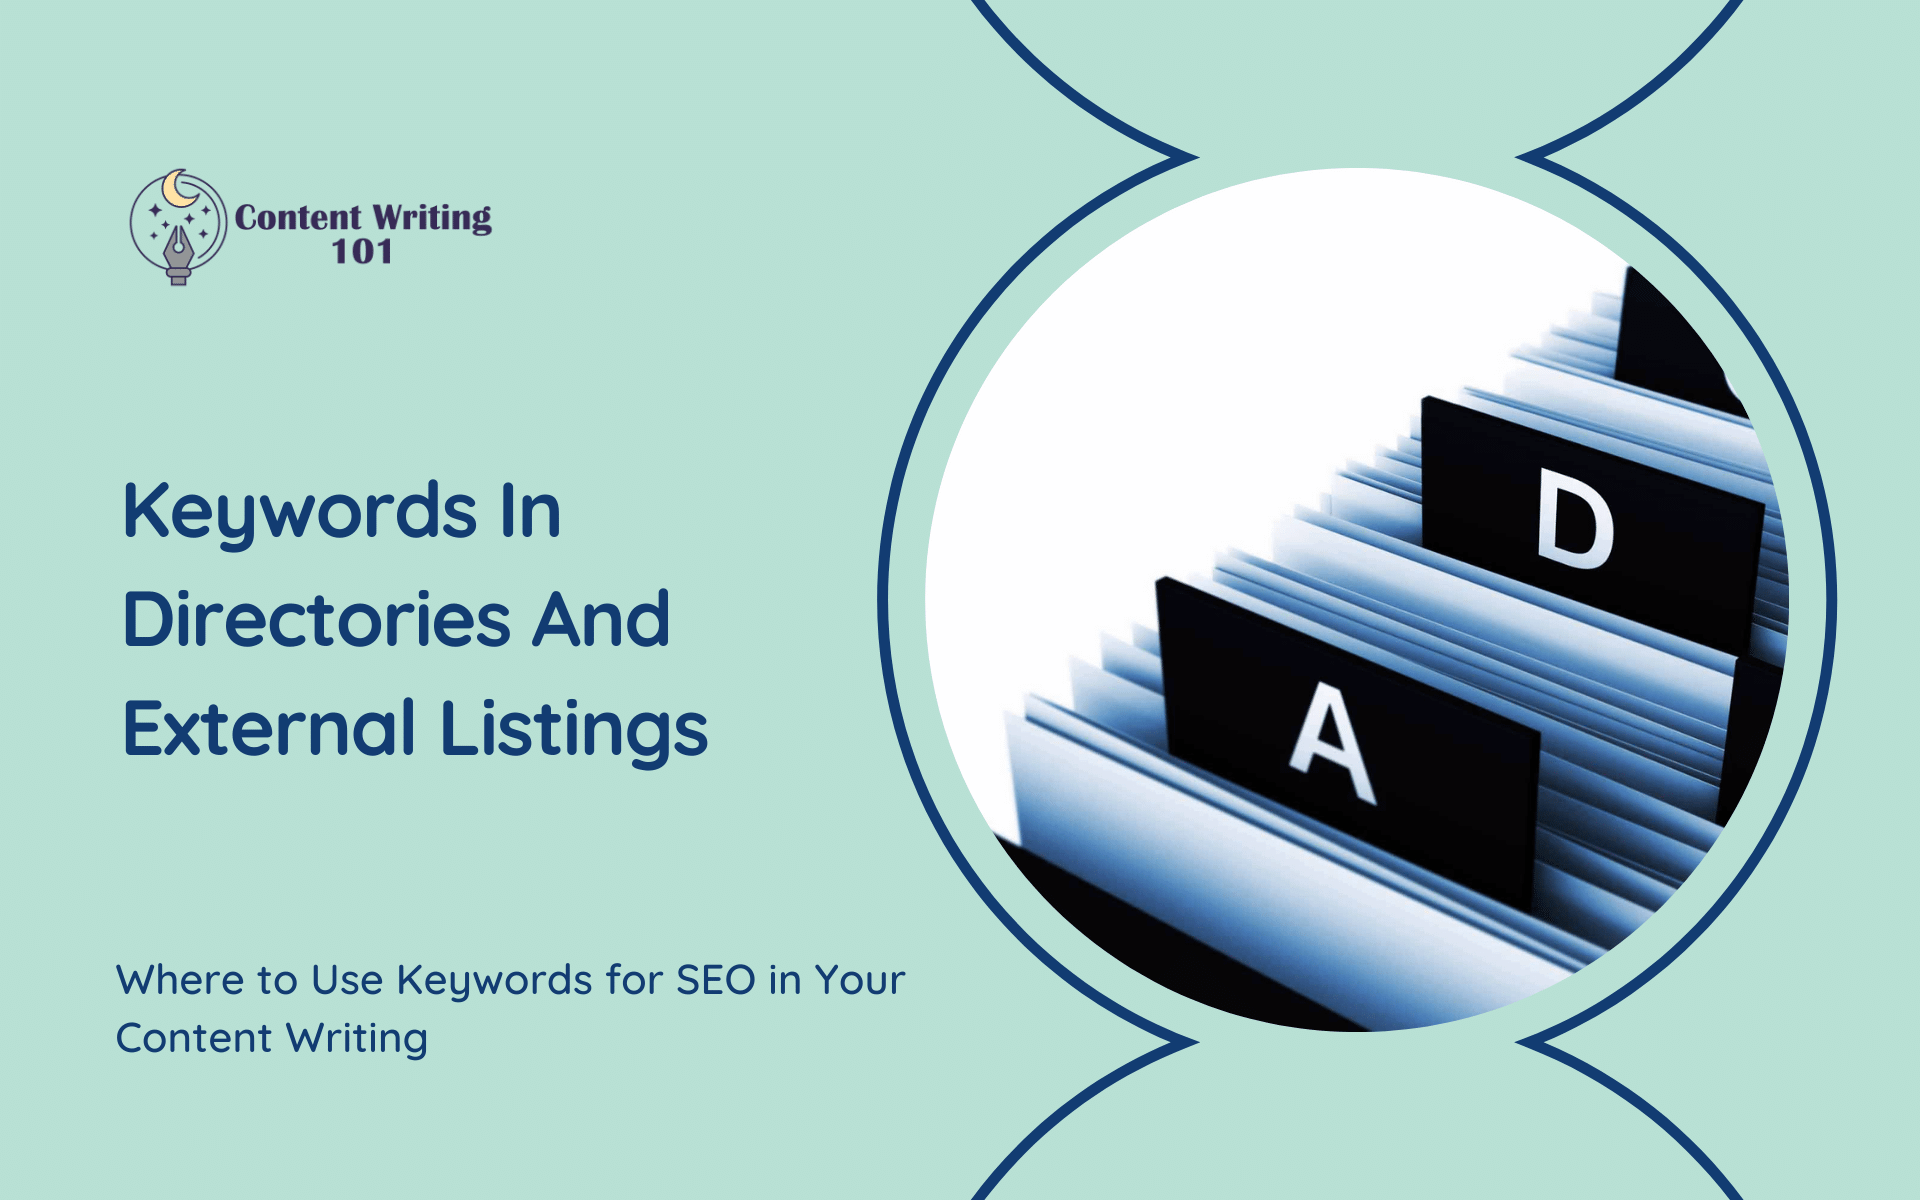 Keywords in Directories and Listings